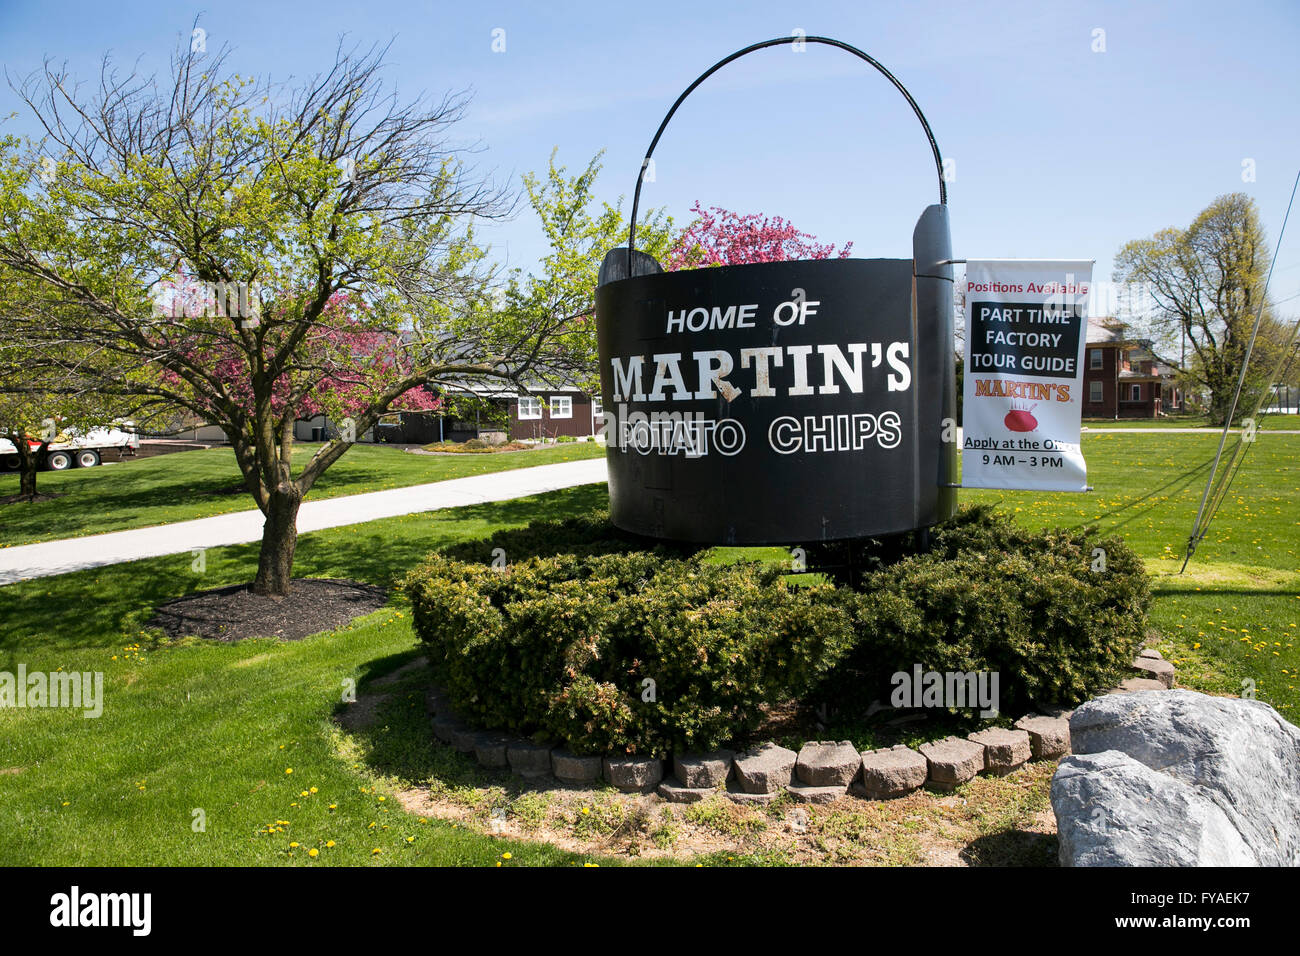 A logo sign outside of the headquarters of Martin's Potato Chips, Inc., in Thomasville, Pennsylvania on April - Stock Image